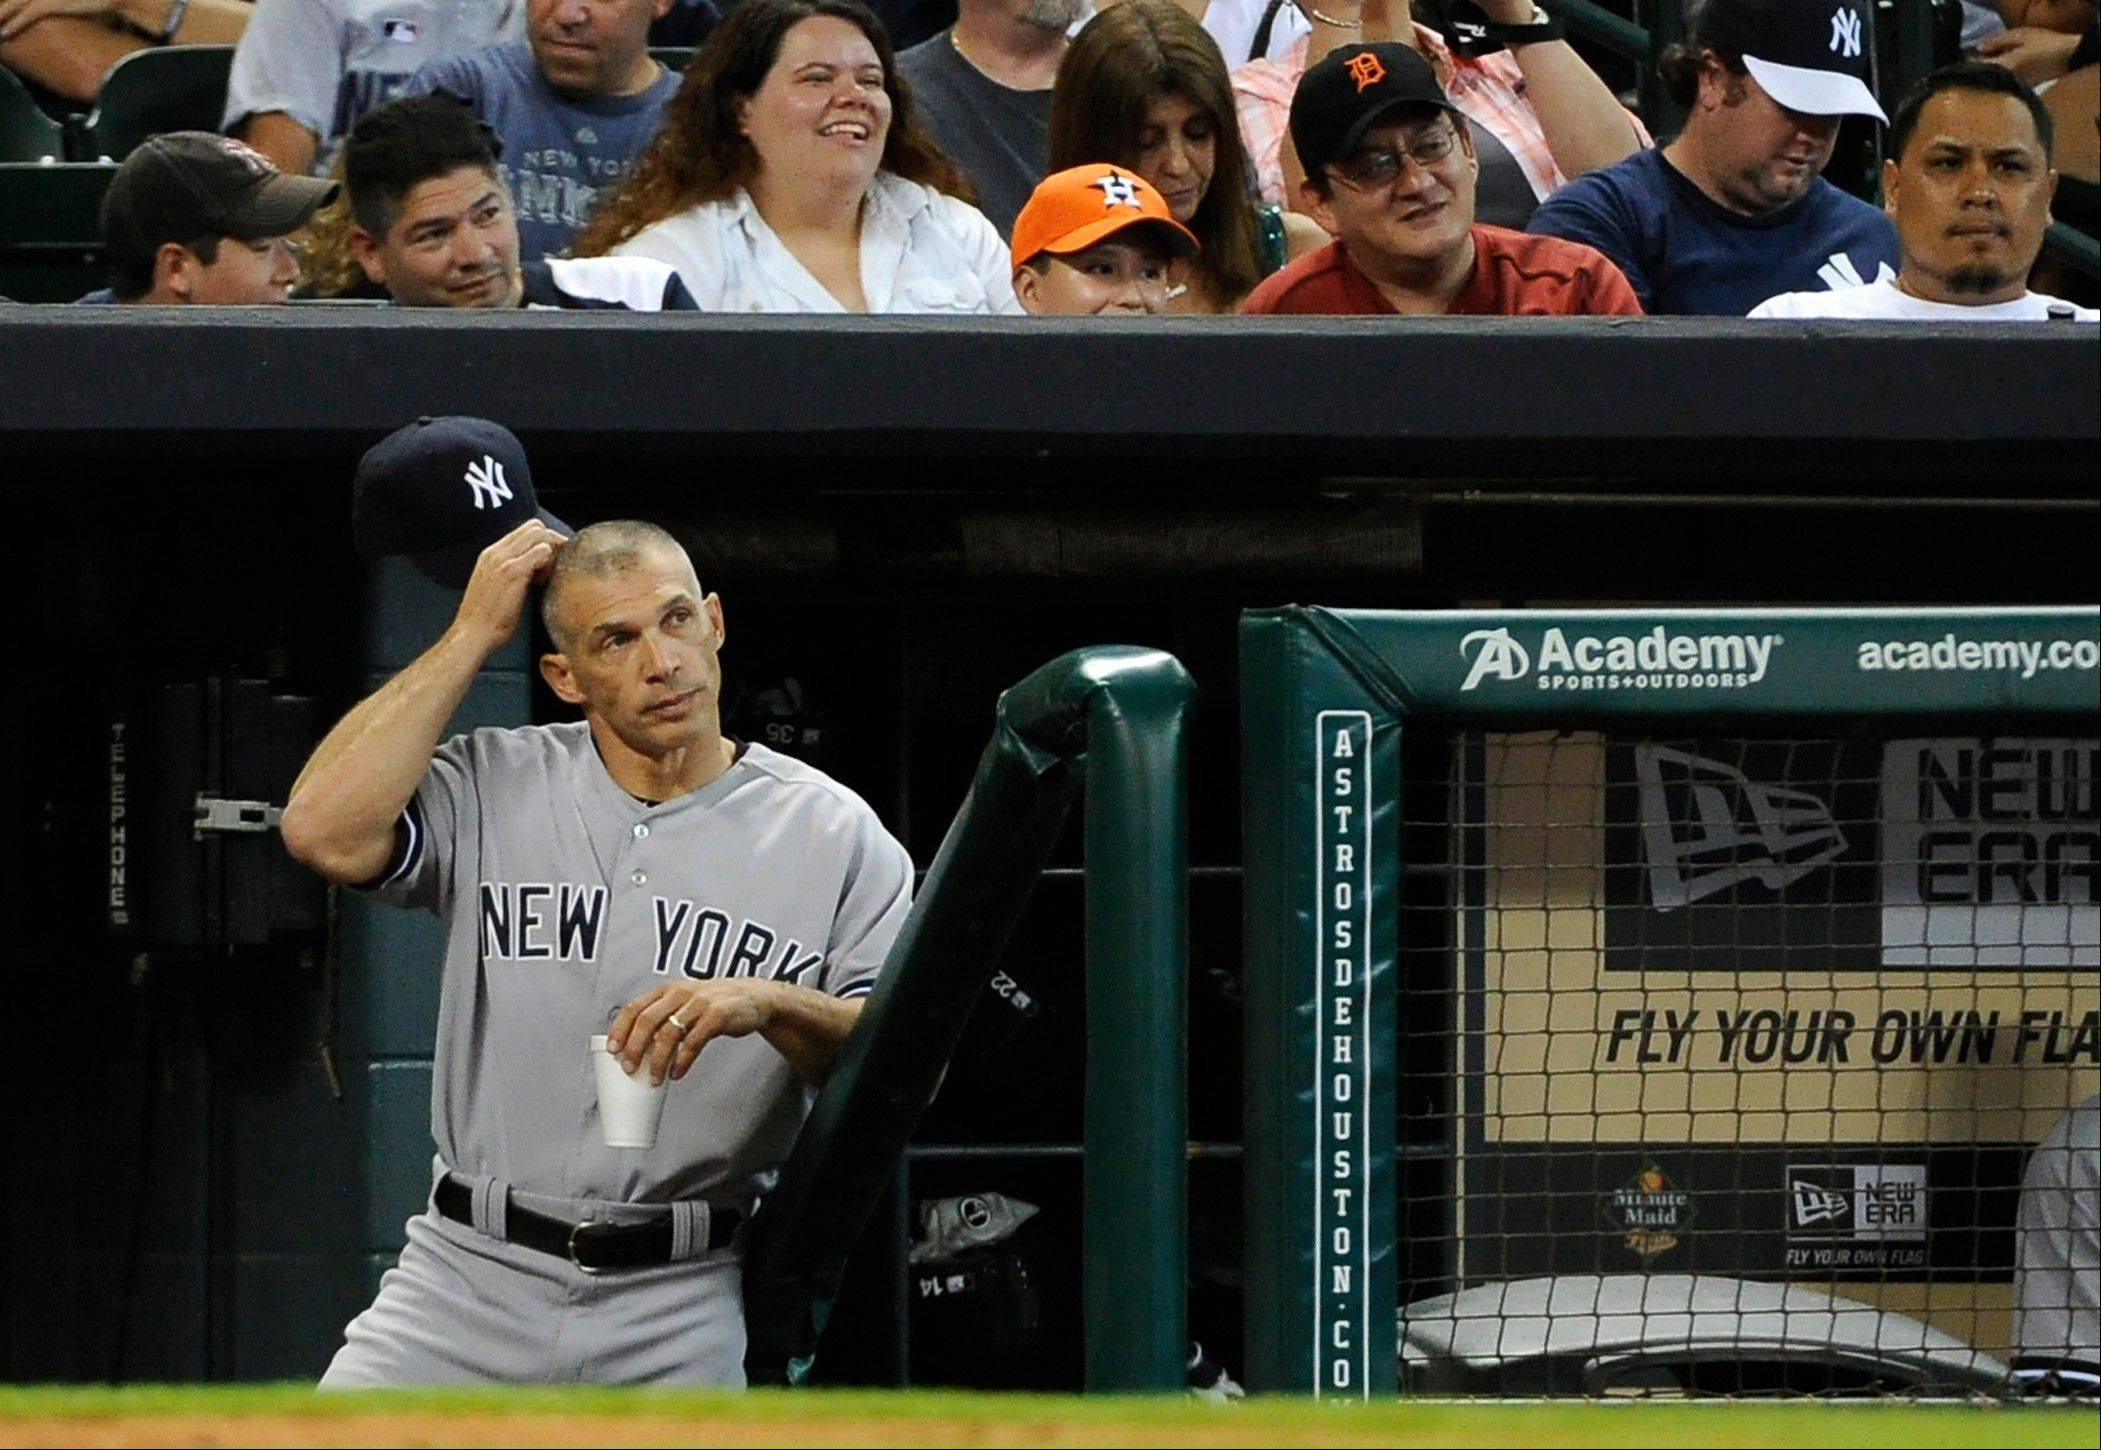 Associated PressAccording to a New York report, the Yankees will not allow the Cubs to talk with manager Joe Girardi while he remains under contract. Girardi's contract expires Nov. 1, but GM Brian Cashman says he wants Girardi to stay.